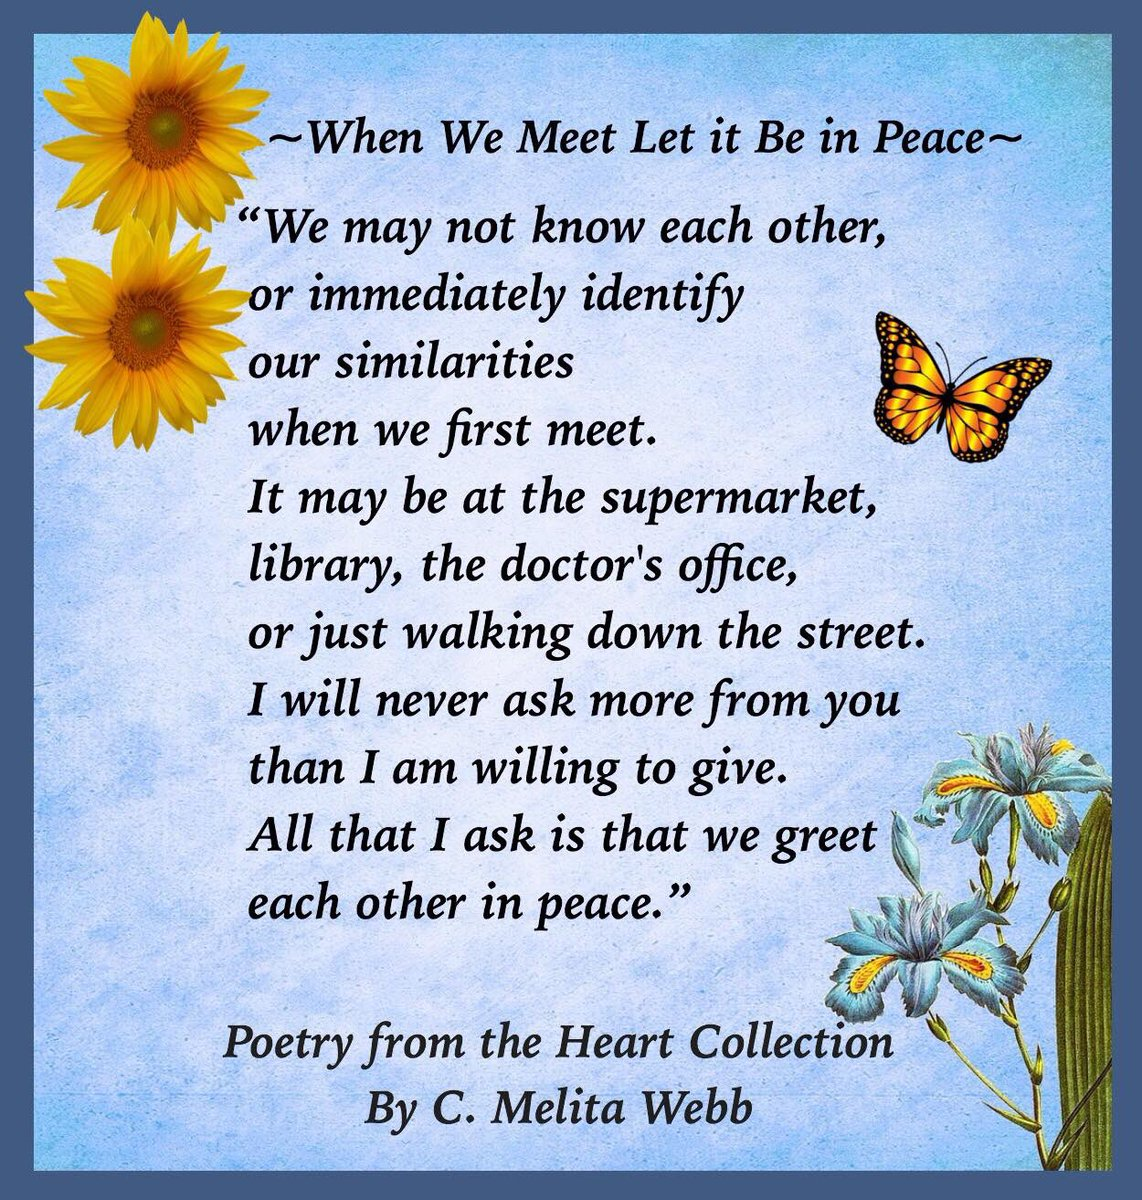 """When we meet let it be in Peace."" ~CMW #peace #FridayFeeling #weekendvibes #poetry #poet #ThinkBIGSundayWithMarsha #JoyTrain #TwitterWorld #UnitedTogether #inspirethemretweettuesday #author<br>http://pic.twitter.com/NRnzl64f40"